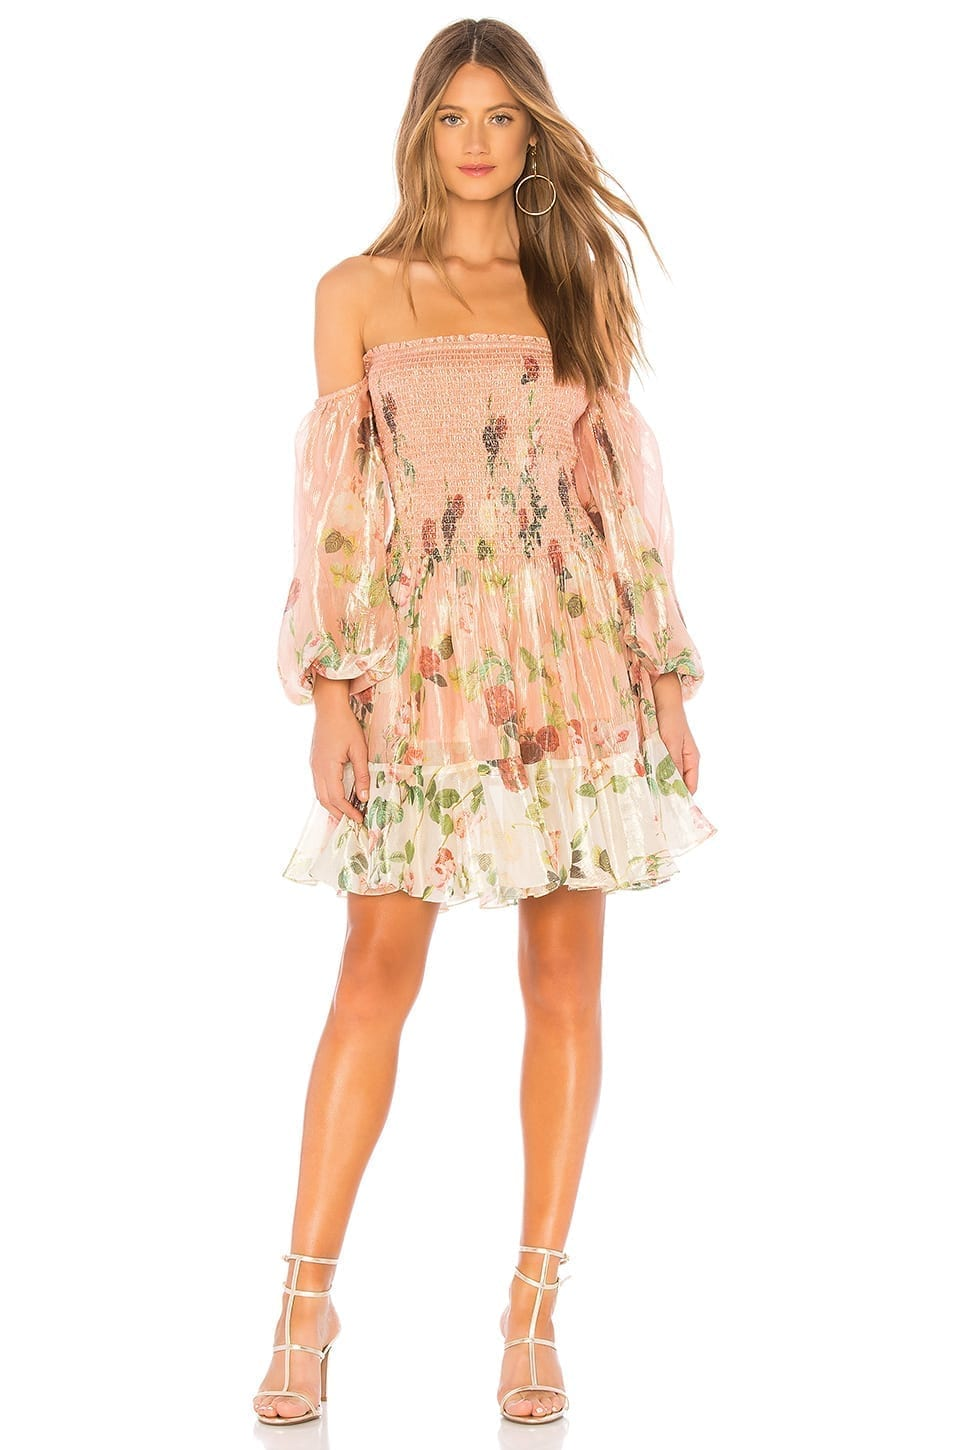 Rococo Sand Off Shoulder Short Peach Dress